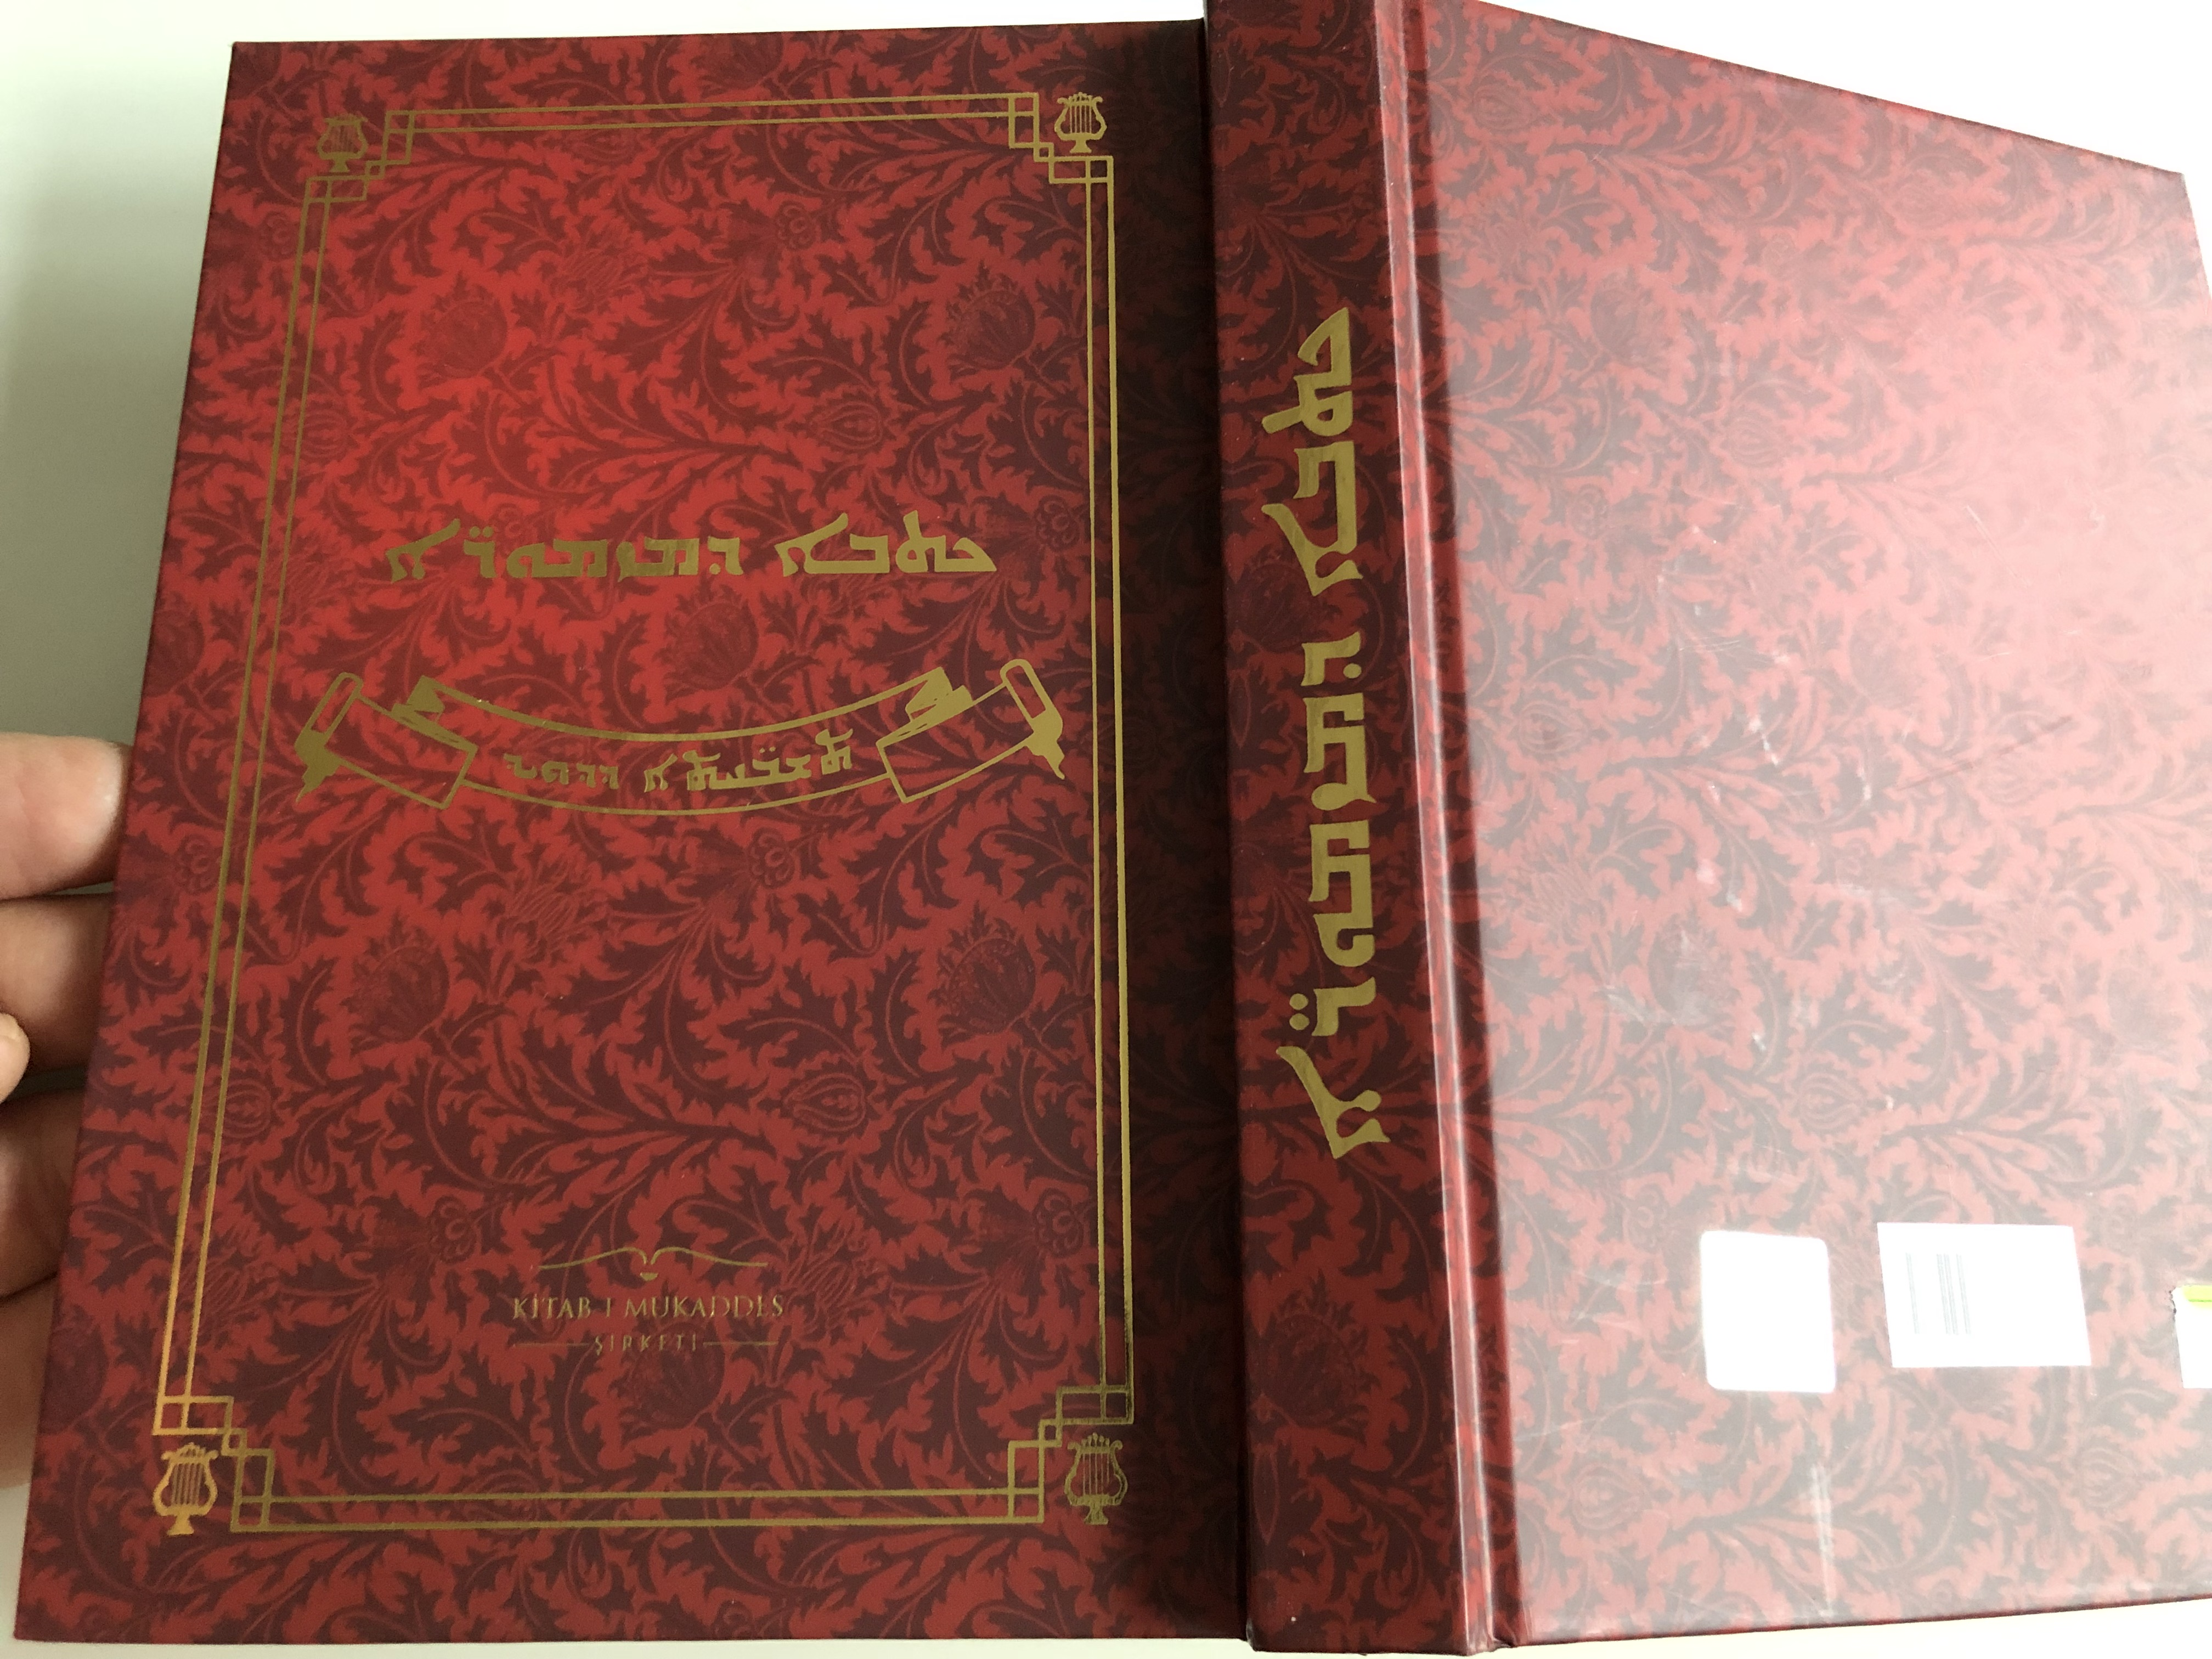 the-book-of-psalms-in-syriac-language-with-english-and-turkish-introduction-hardcover-18-.jpg